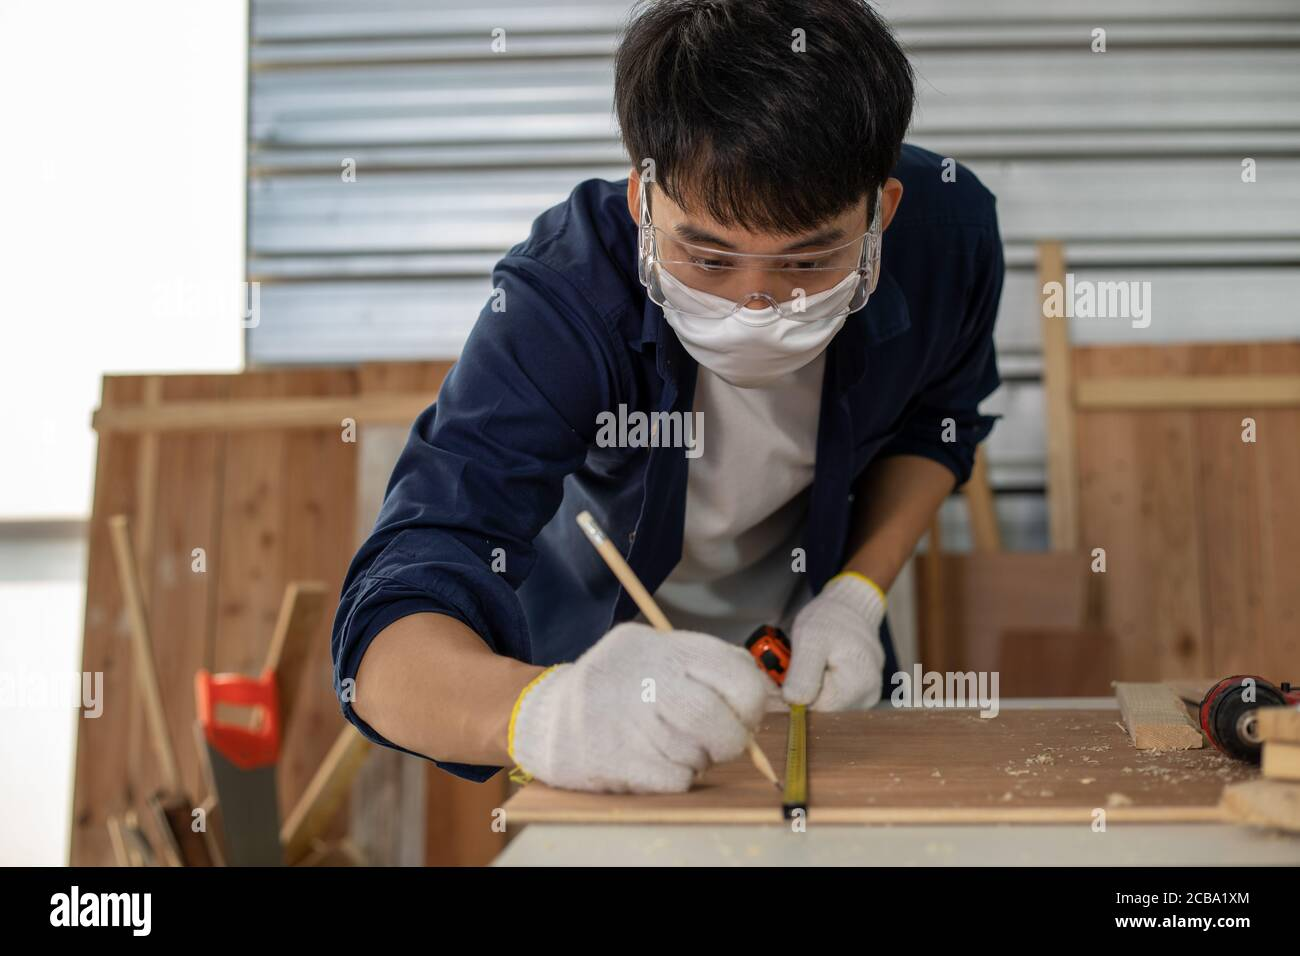 Asian man Carpenter working with technical drawing or blueprint construction paper lying on a workshop with carpentry tools and wood at home Stock Photo